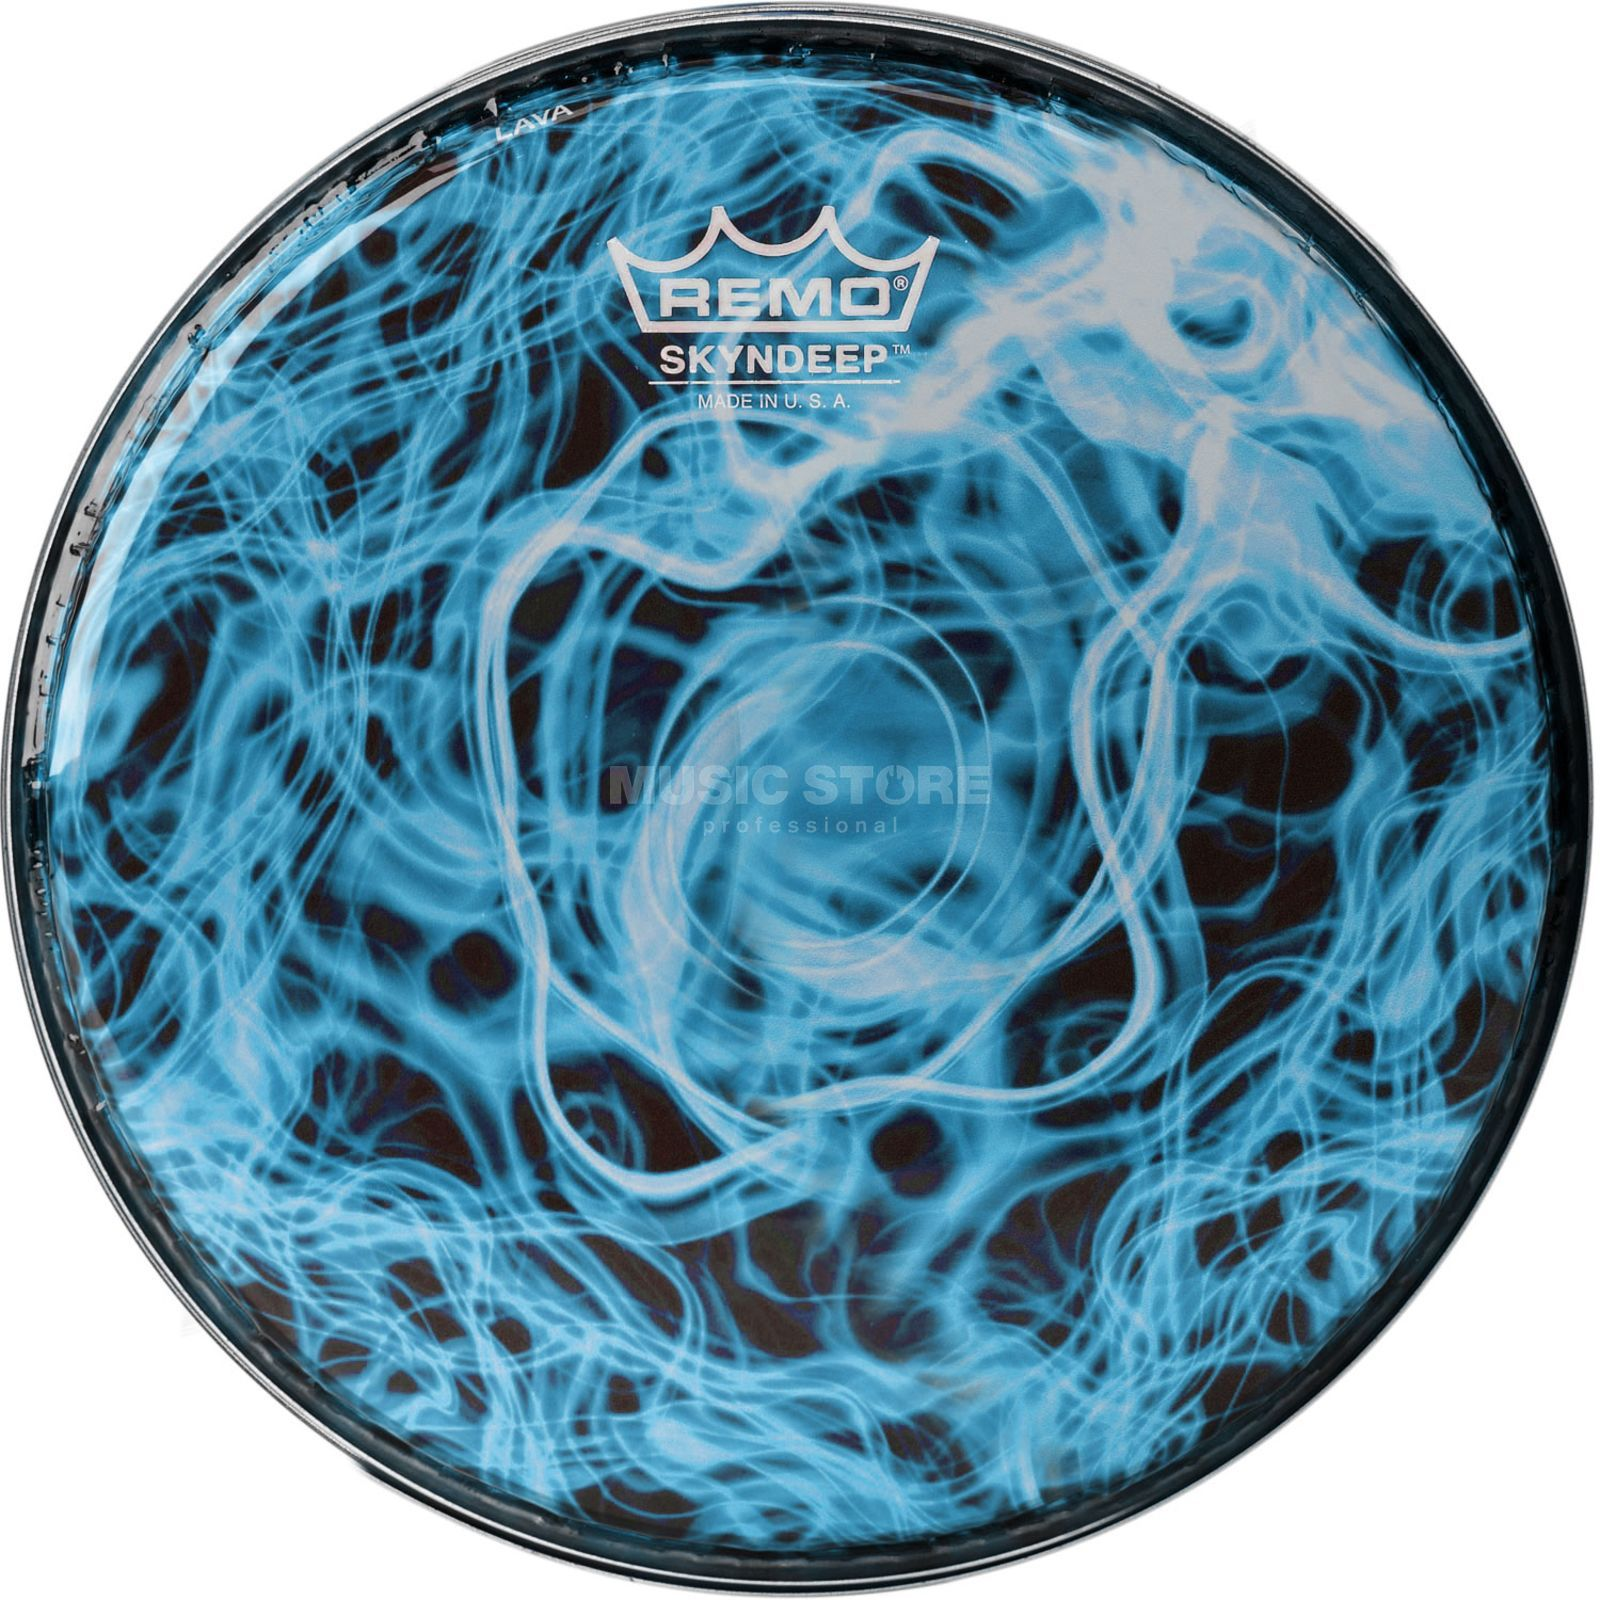 "Remo DoumbekFell BD-0010-00-SC018, 10"", Turquoise Mist Graphic Produktbillede"